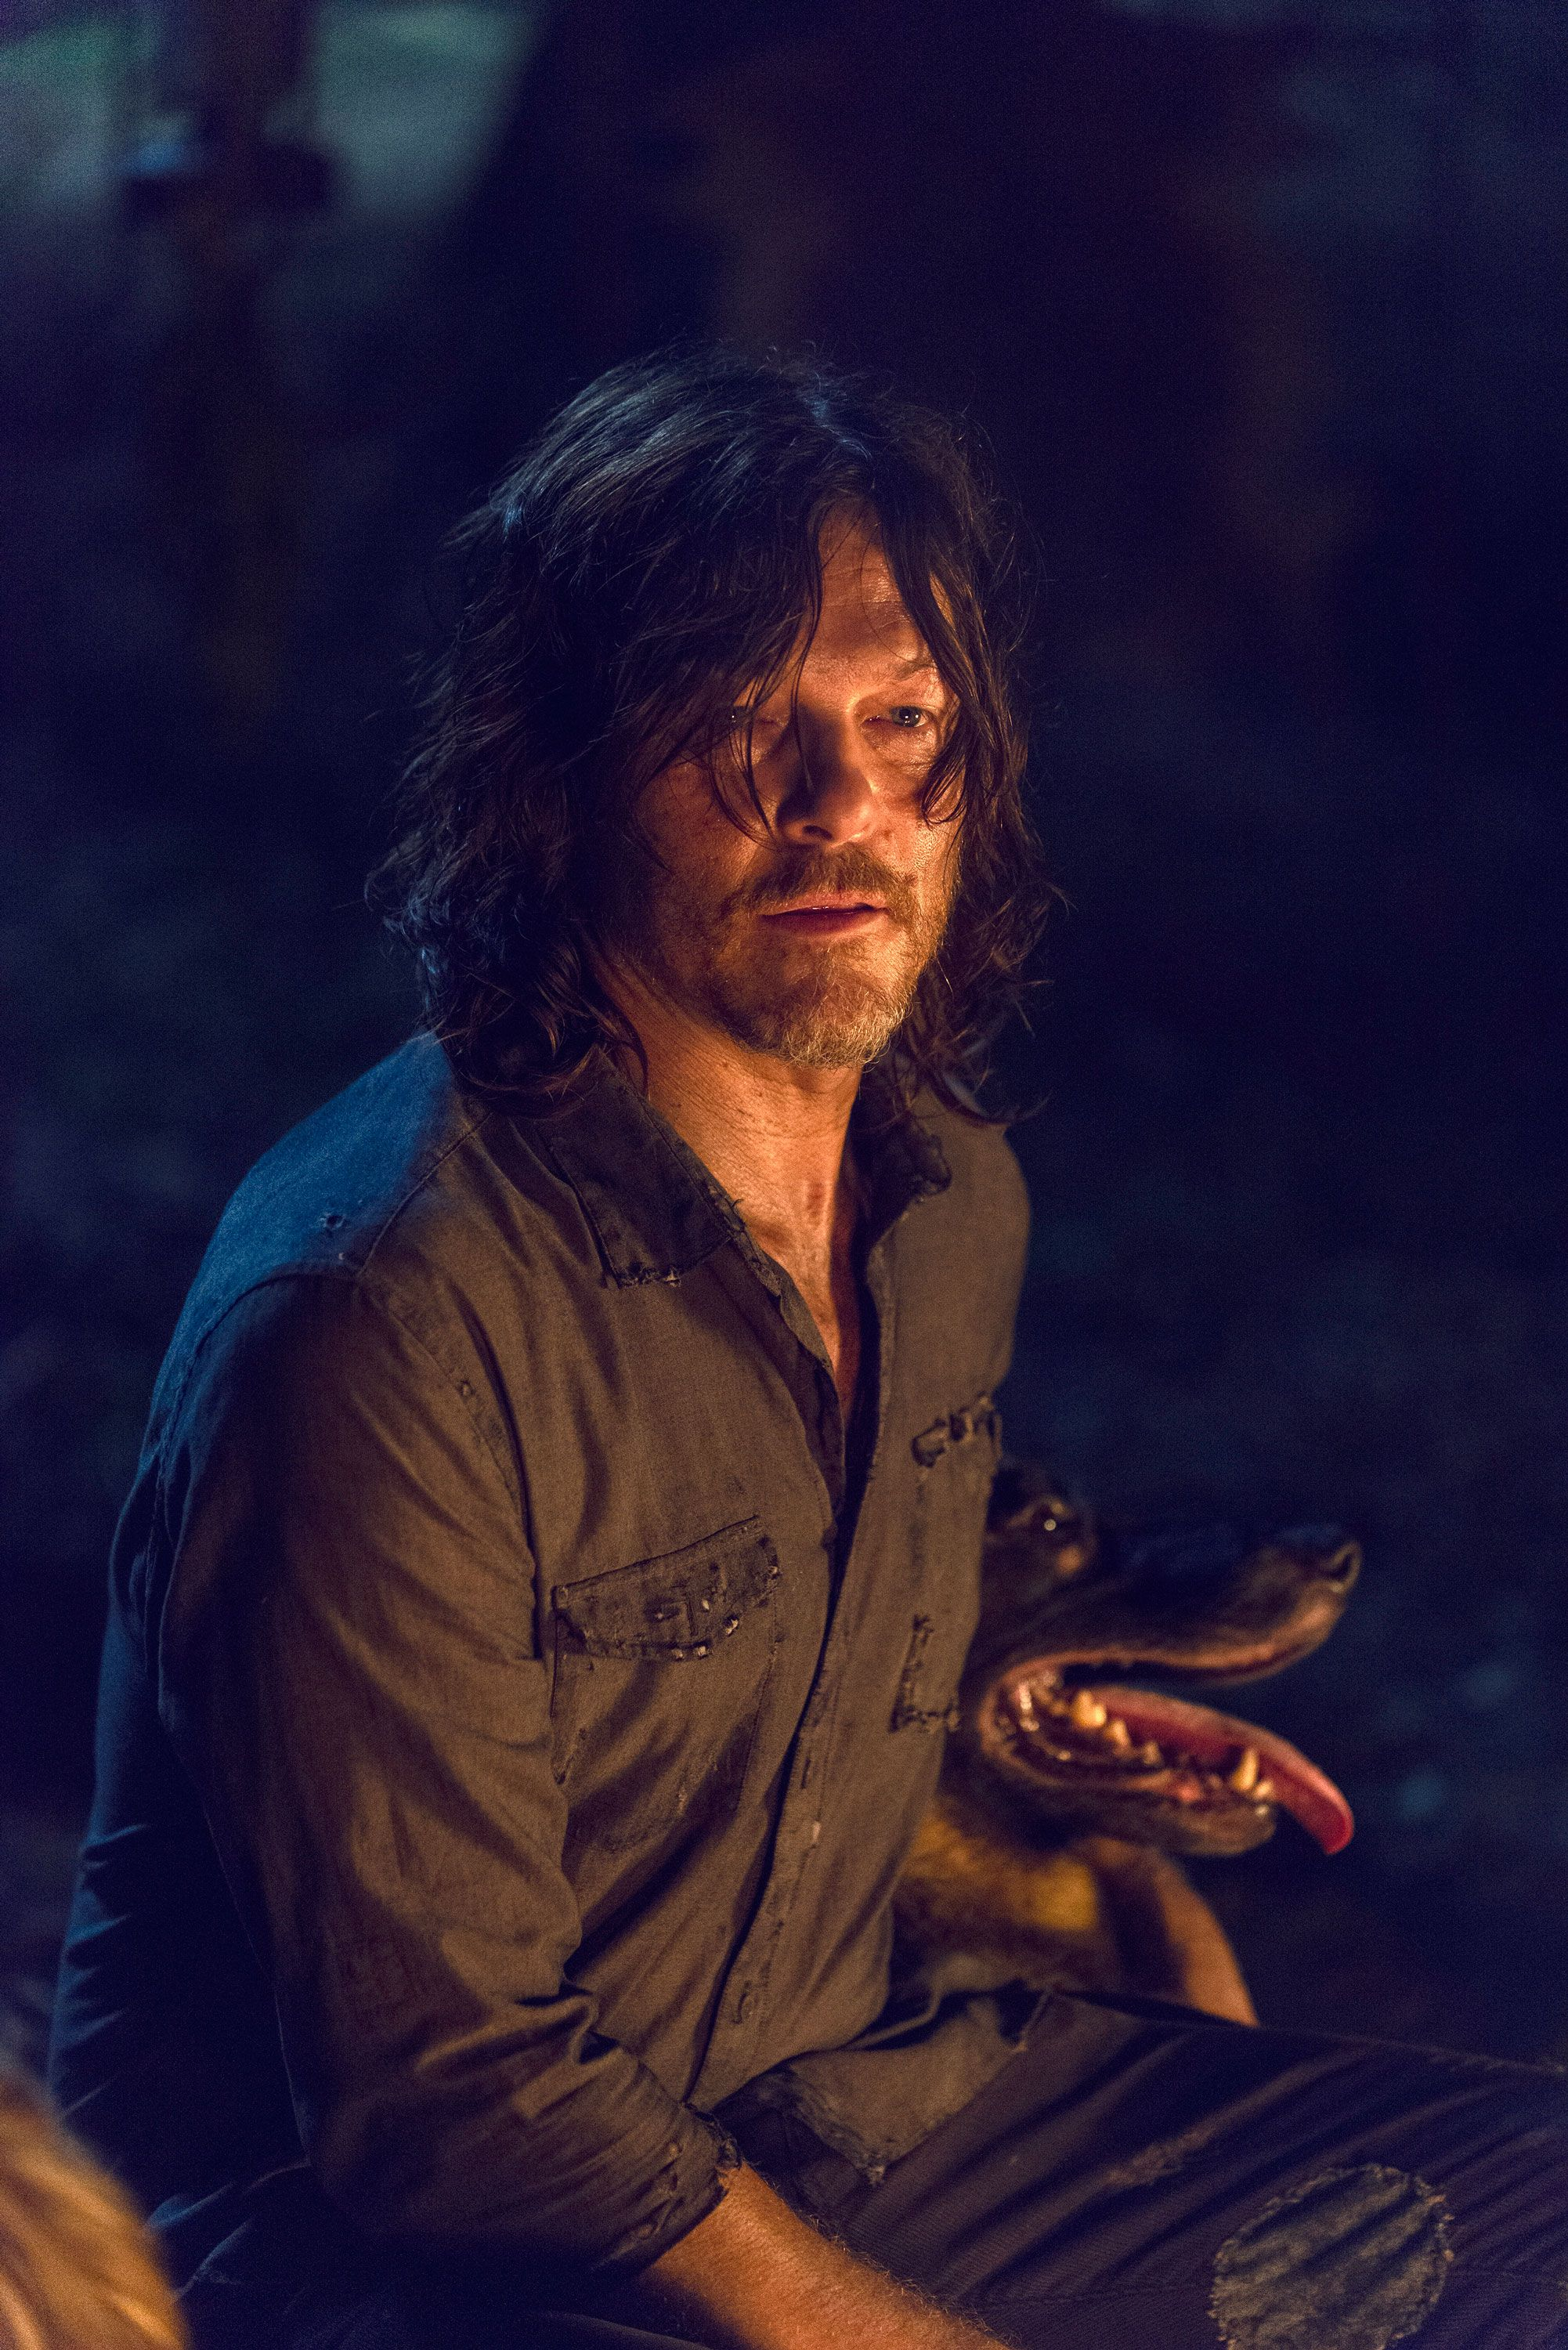 Norman Reedus nei panni di Daryl Dixon e cane in The Walking Dead, stagione 9